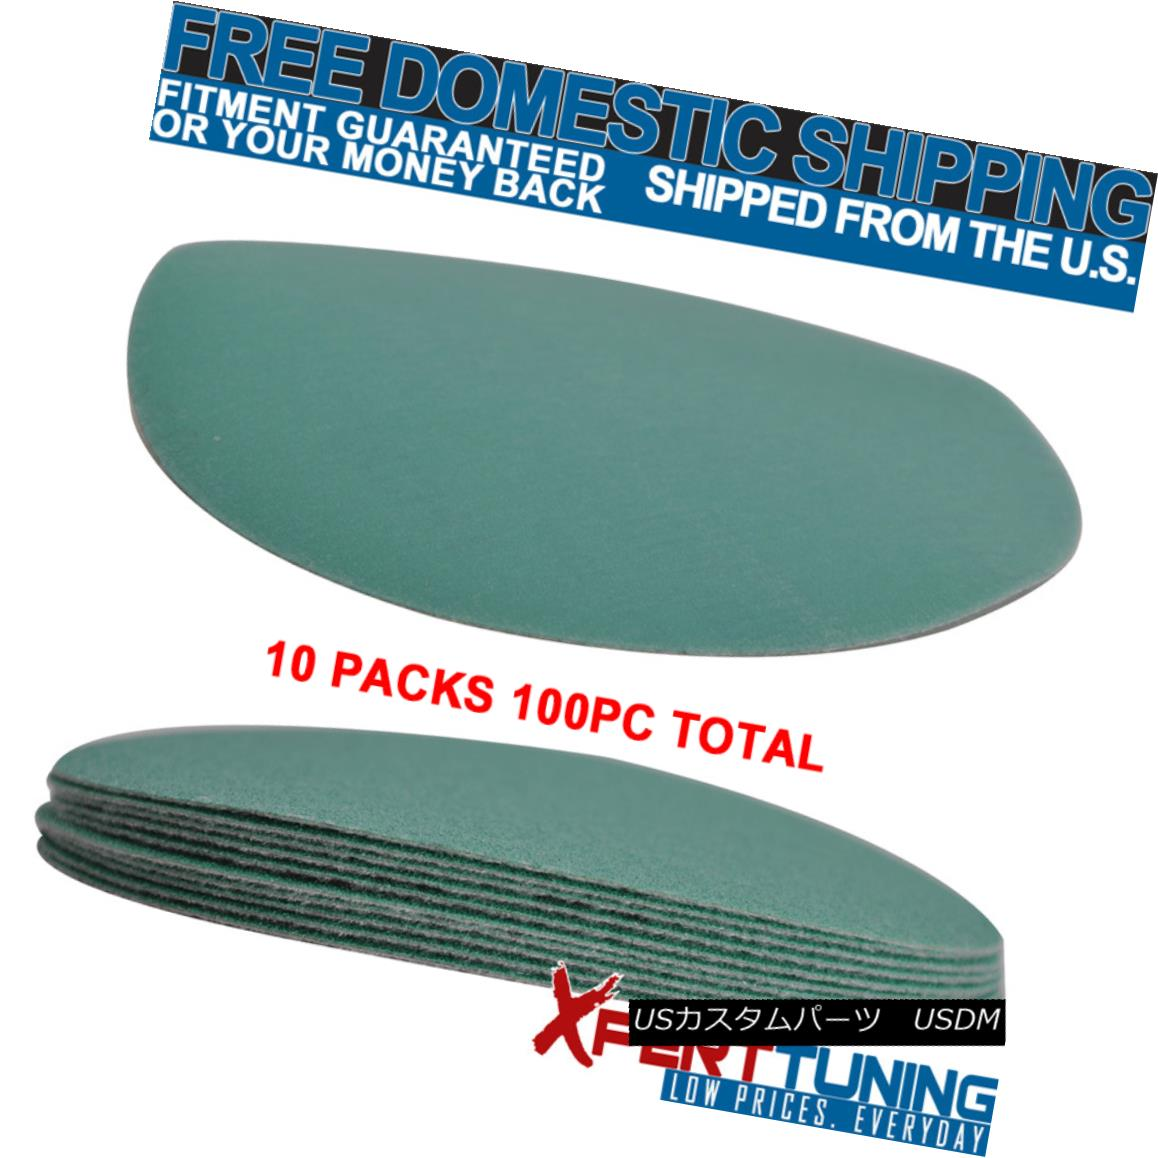 Wet Dry 5 Inch No Hole Sand Paper Disc 320 Grit Body Repair Sanding Sheet 100 PC